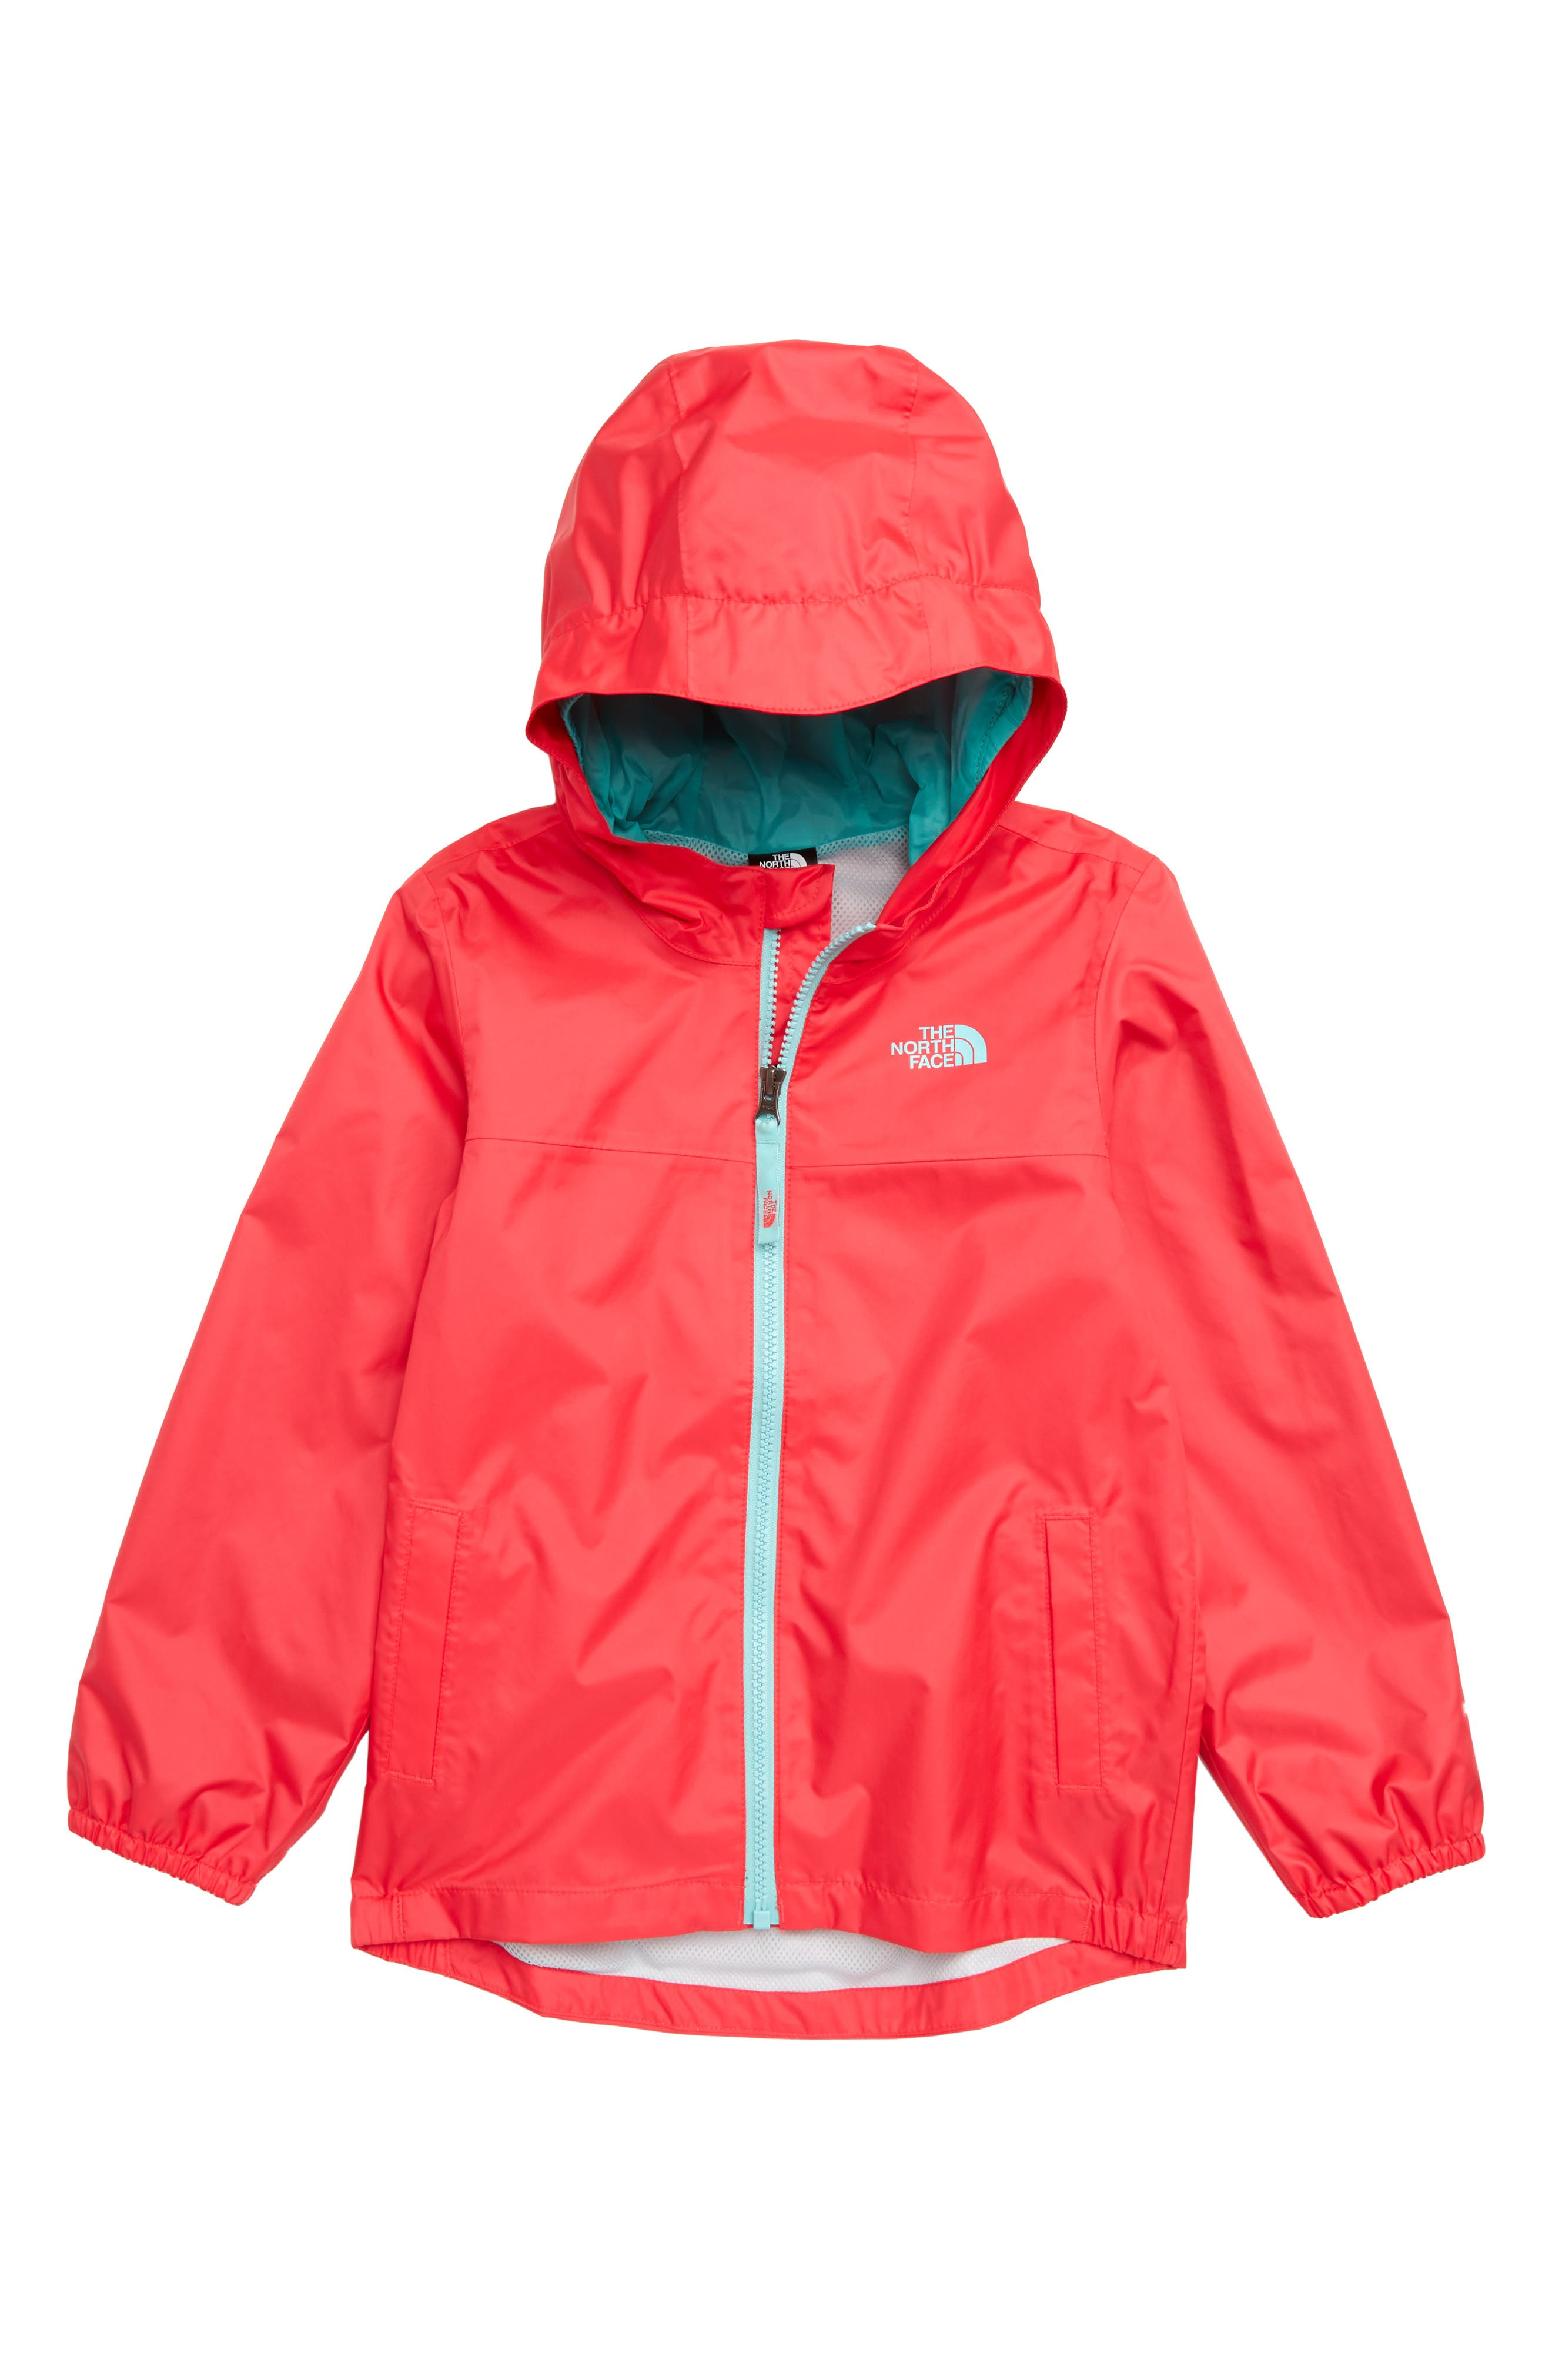 top quality north face hyvent jacket ladies c14d2 68cac a291da8c2